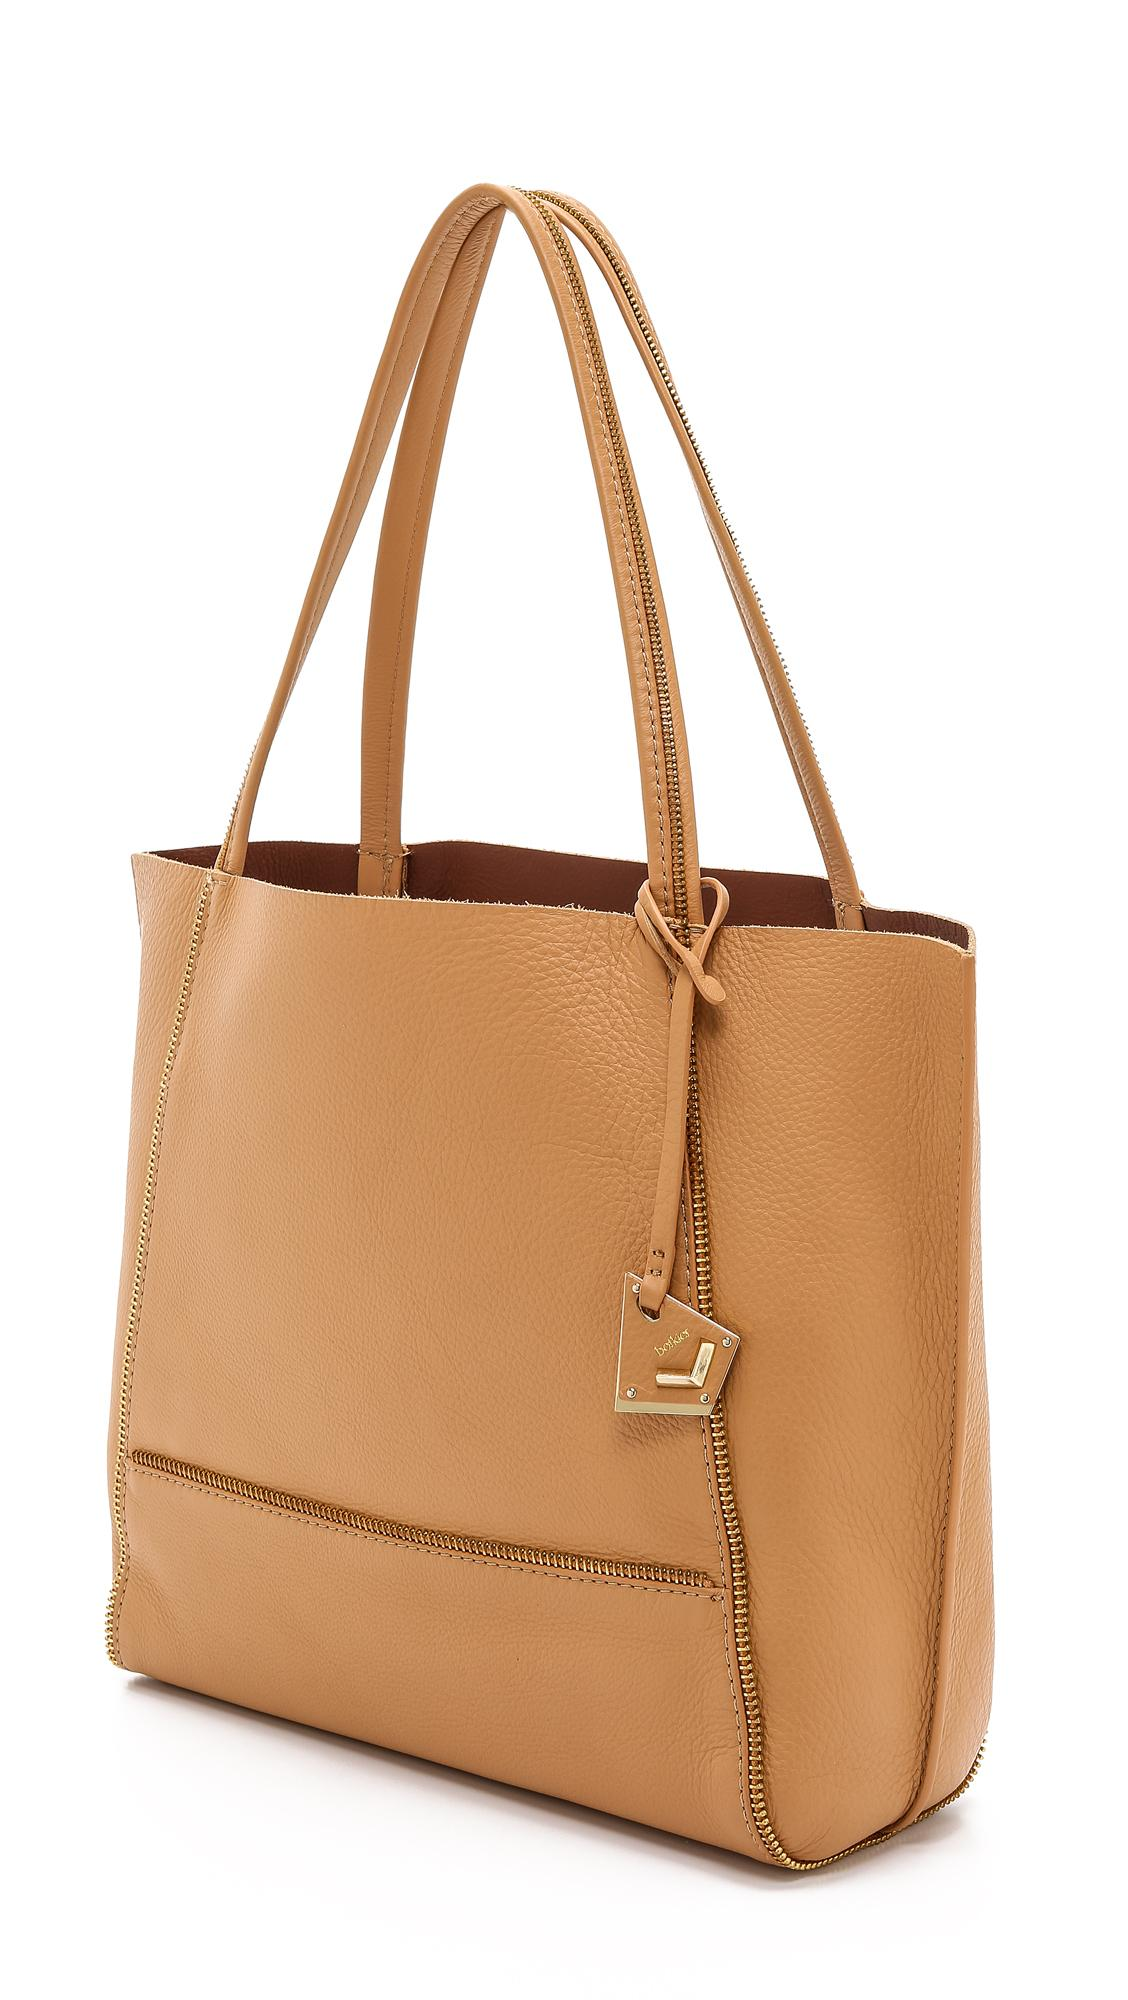 Botkier Leather Soho Tote in Camel/Gold (Brown)